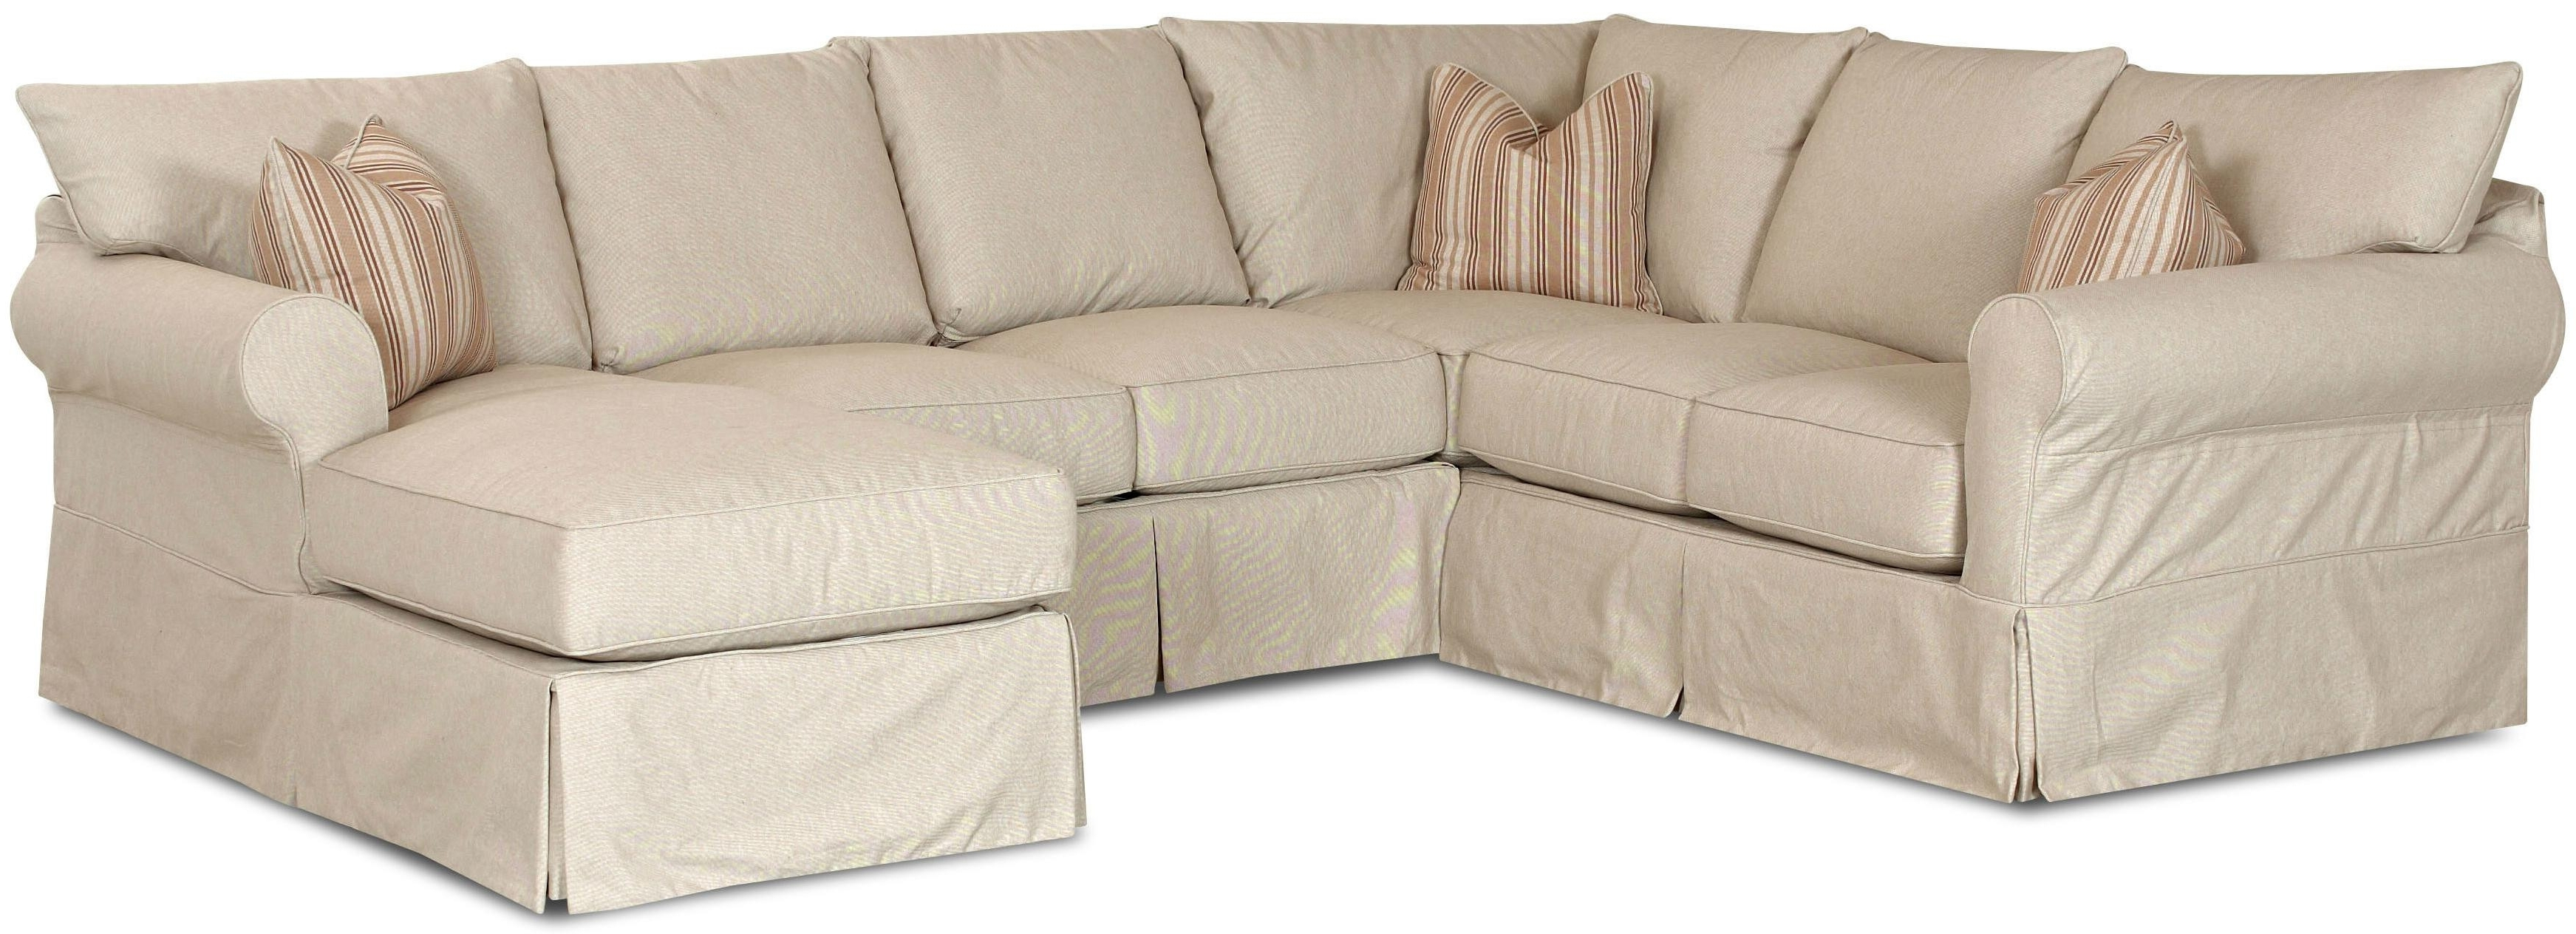 Most Popular Furniture : U Shaped Sectional Couch Covers Luxury Slip Cover Pertaining To Chaise Couch Covers (View 12 of 15)